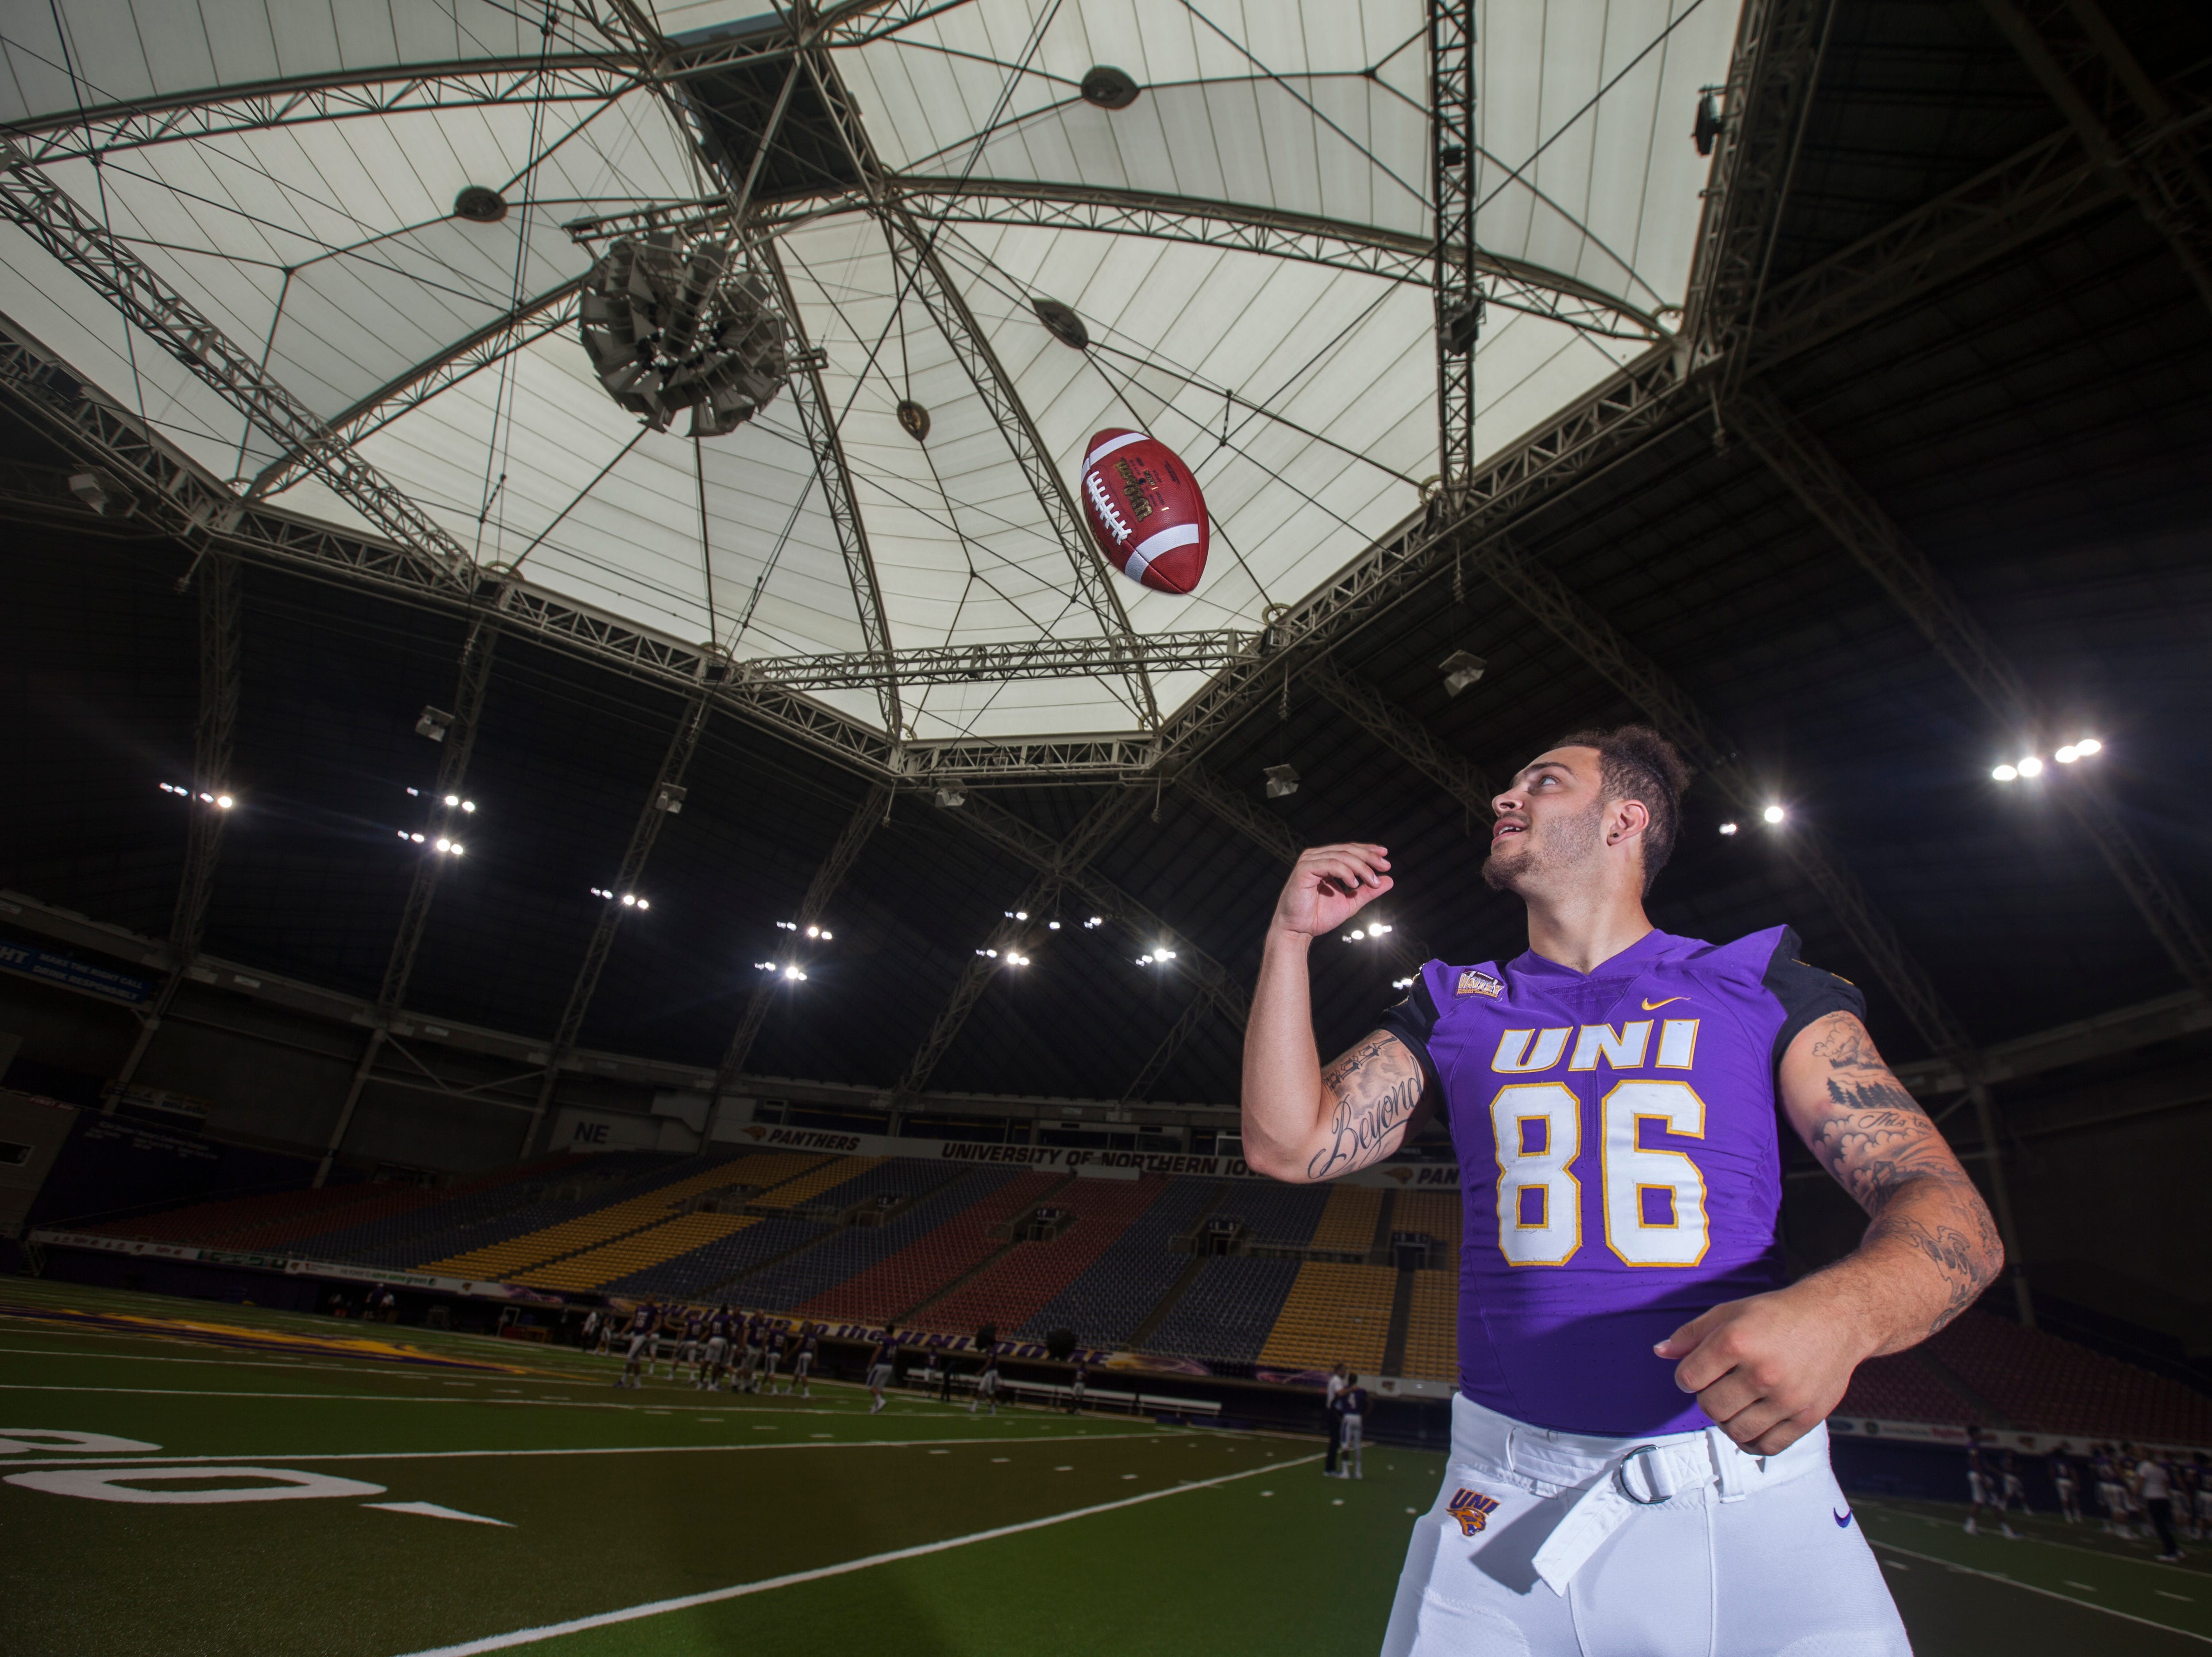 UNI tight end Briley Moore poses for a portrait during media day on Wednesday, Aug. 8, 2018, at the UNI-Dome in Cedar Falls, Iowa.